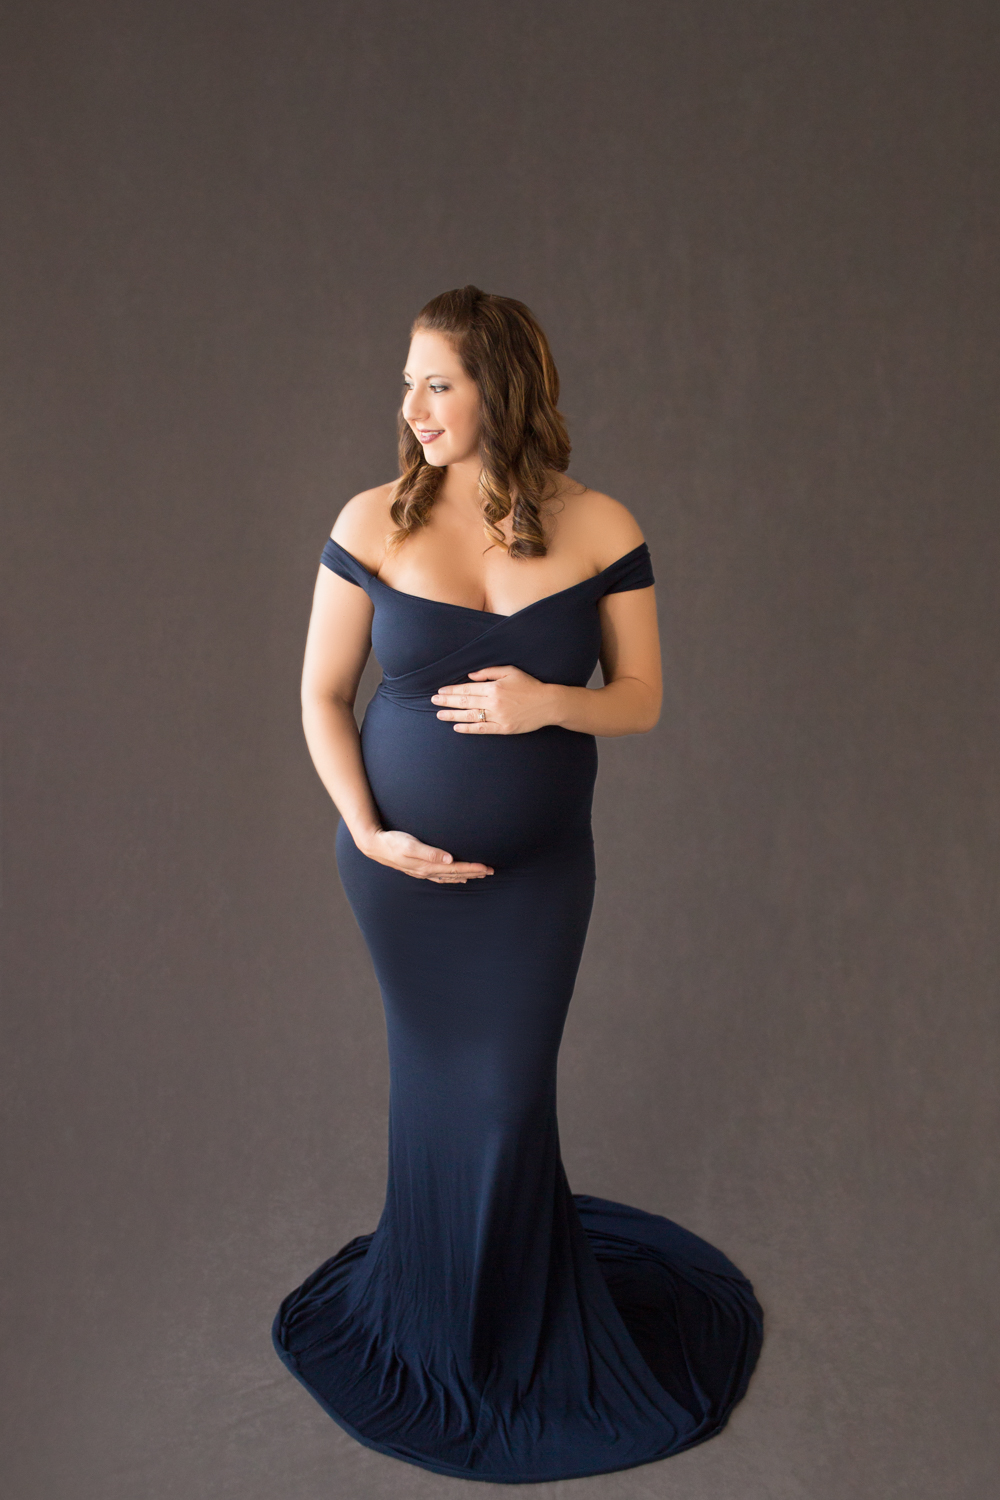 April with Maternity photos in navy gown carrying Twin girls in Gainesville Florida-17